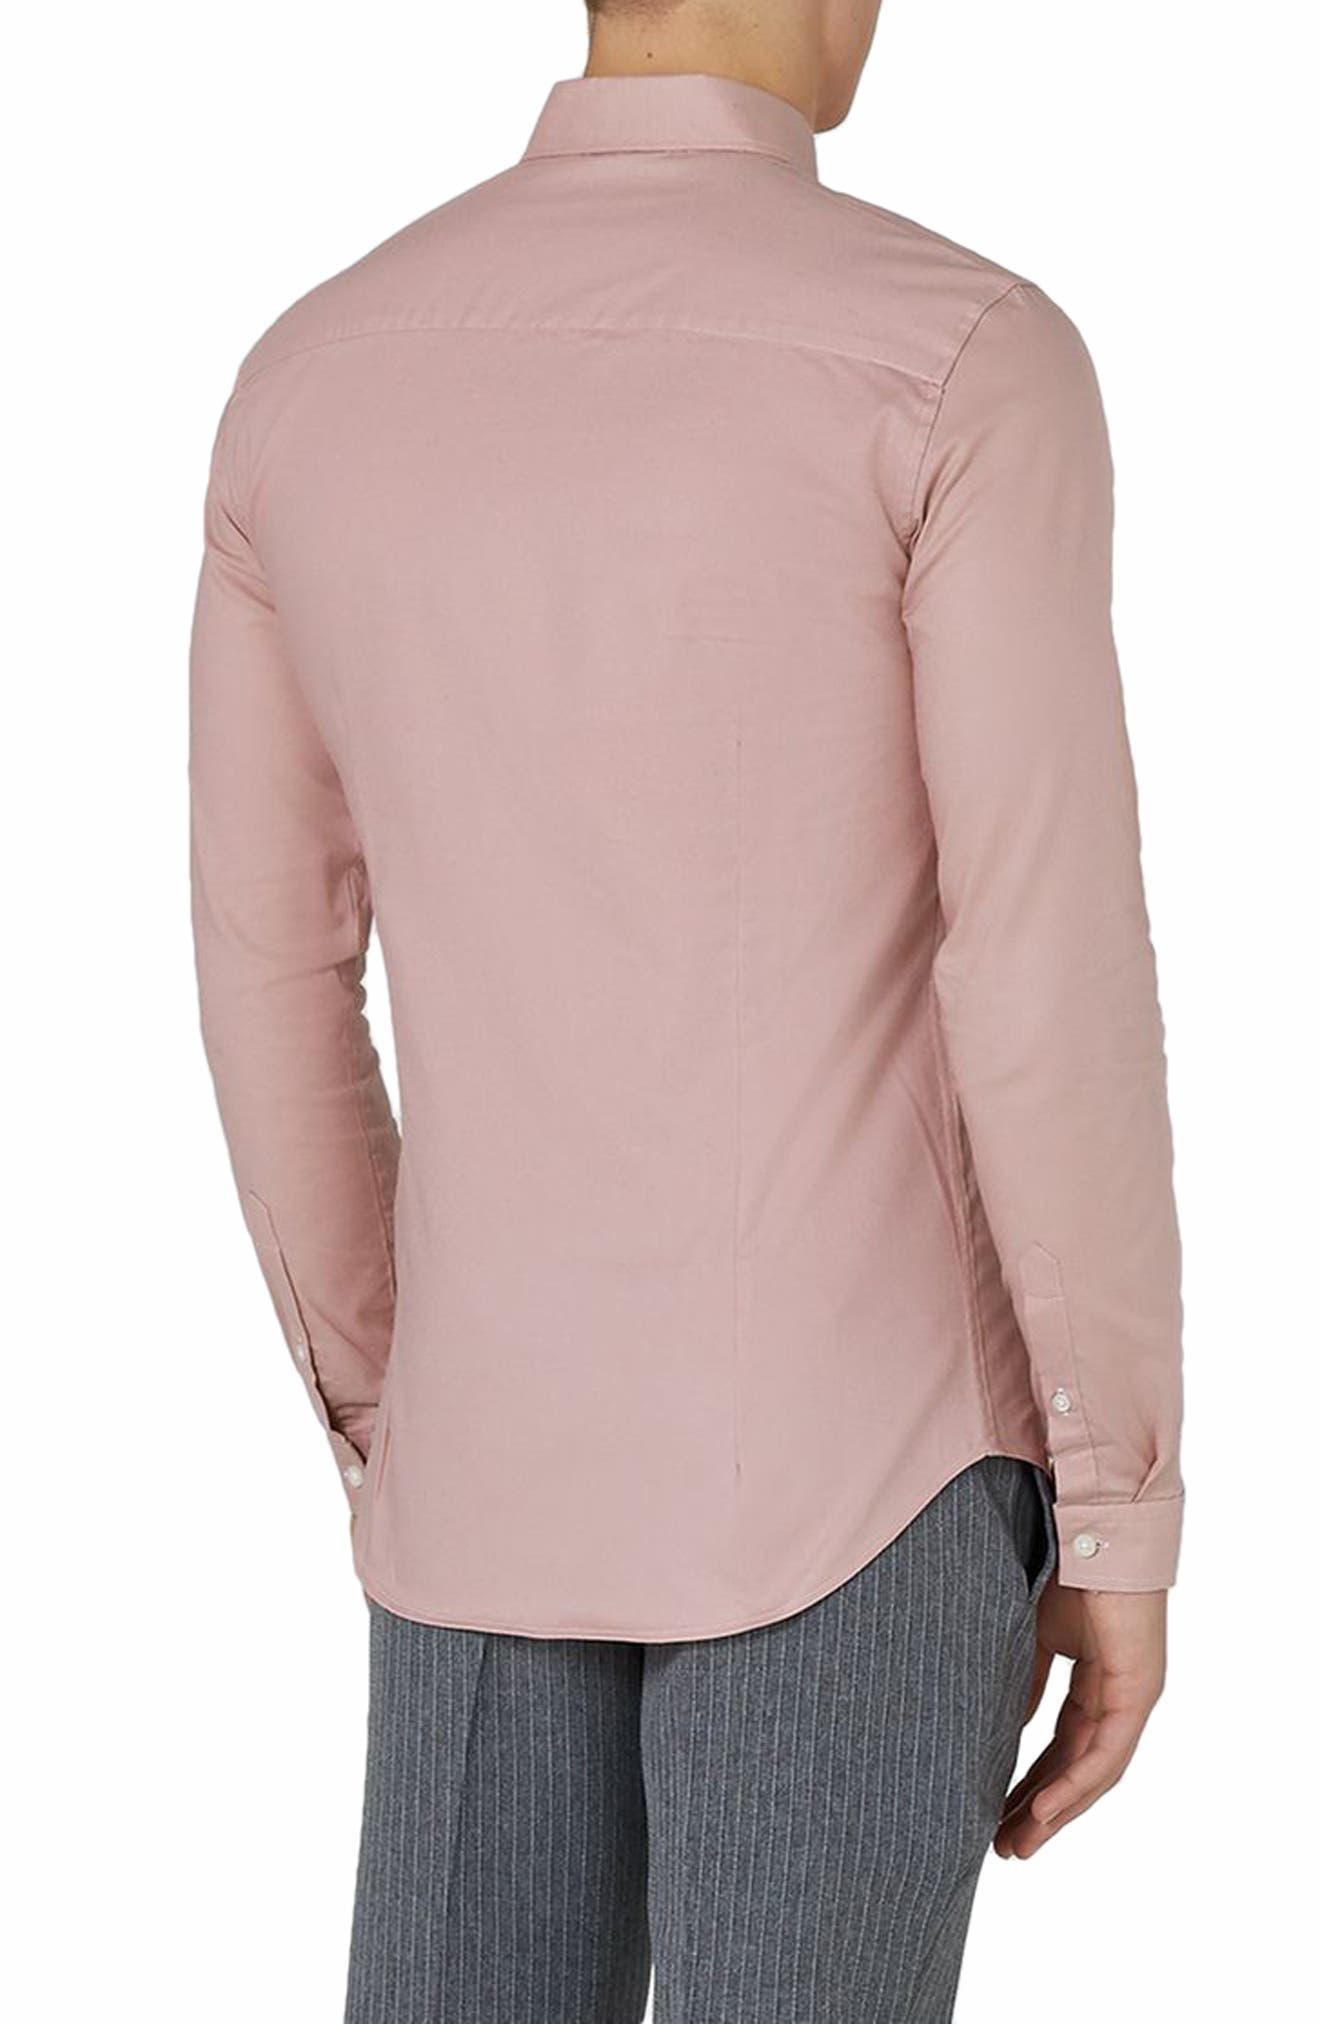 Muscle Fit Oxford Shirt,                             Alternate thumbnail 2, color,                             Pink